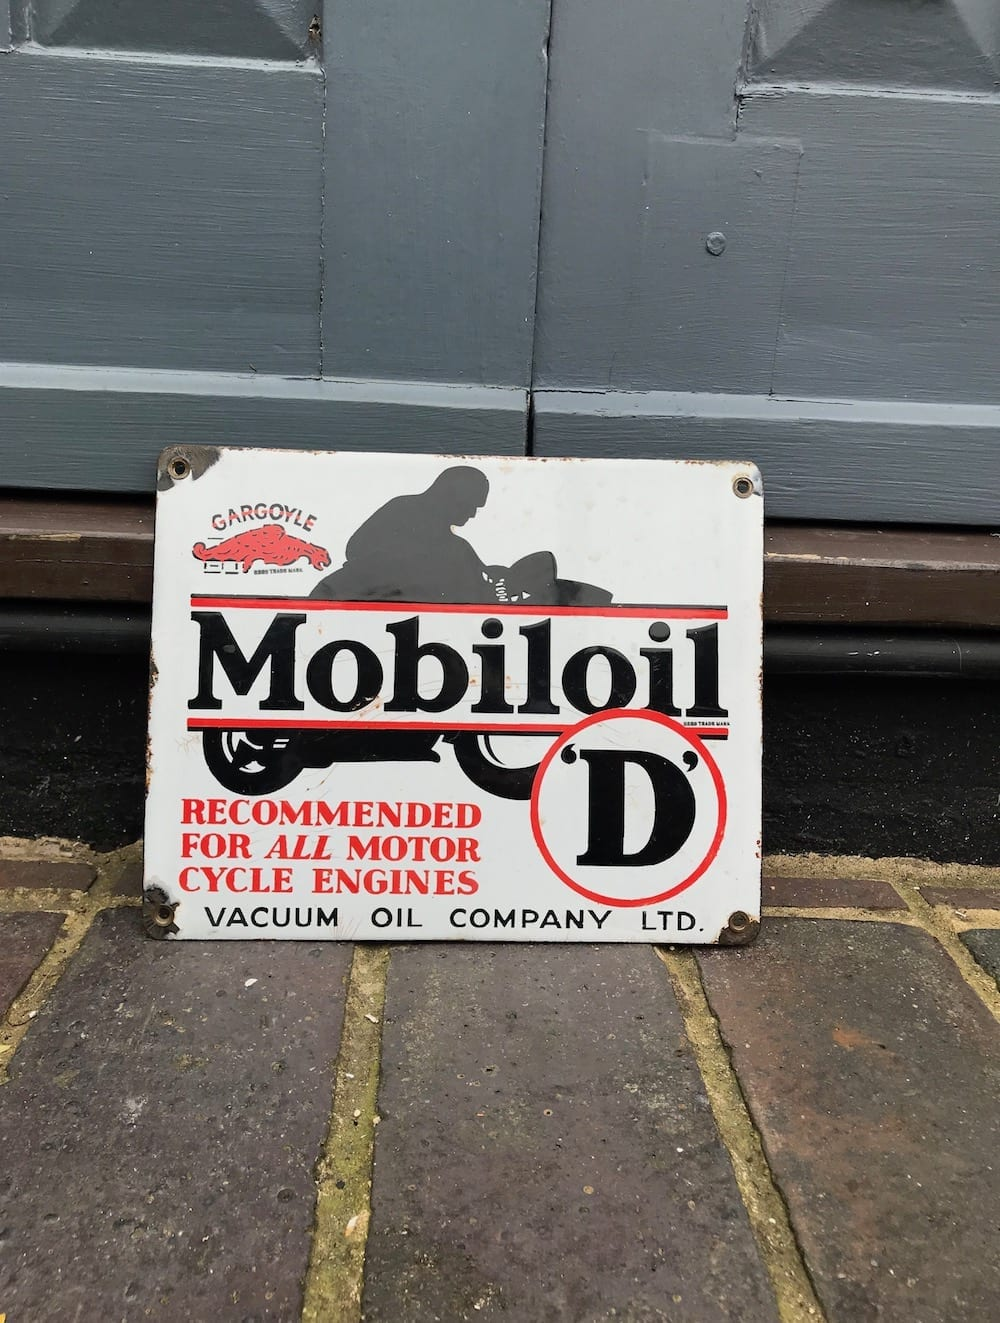 ORIGINAL MOBILOIL 'D' GARGOYLE ENAMEL SIGN. - Vintage Motoring UK